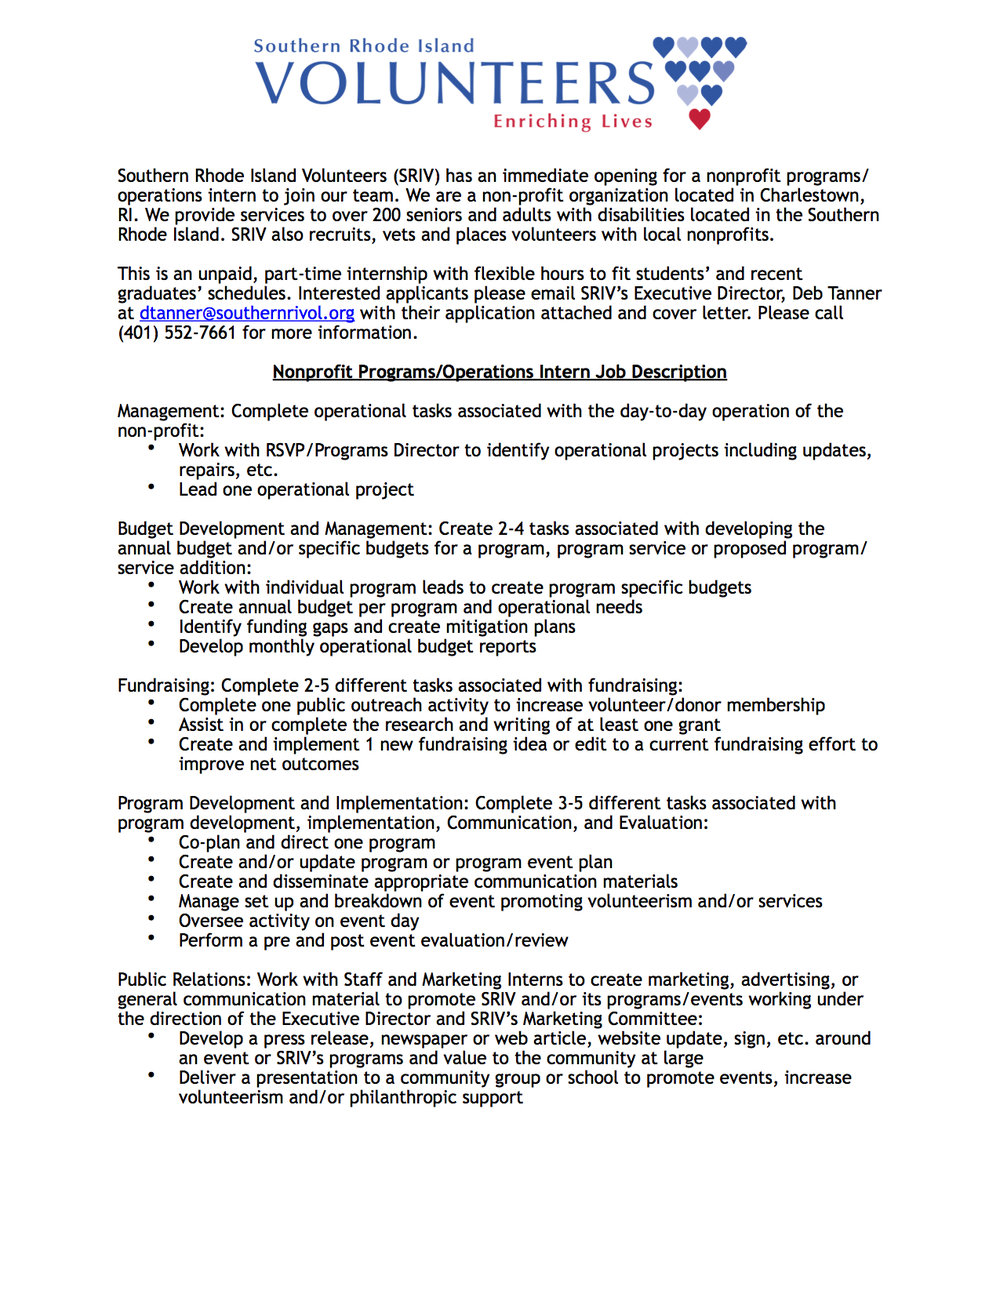 Programs-Operations Internship (2).jpg